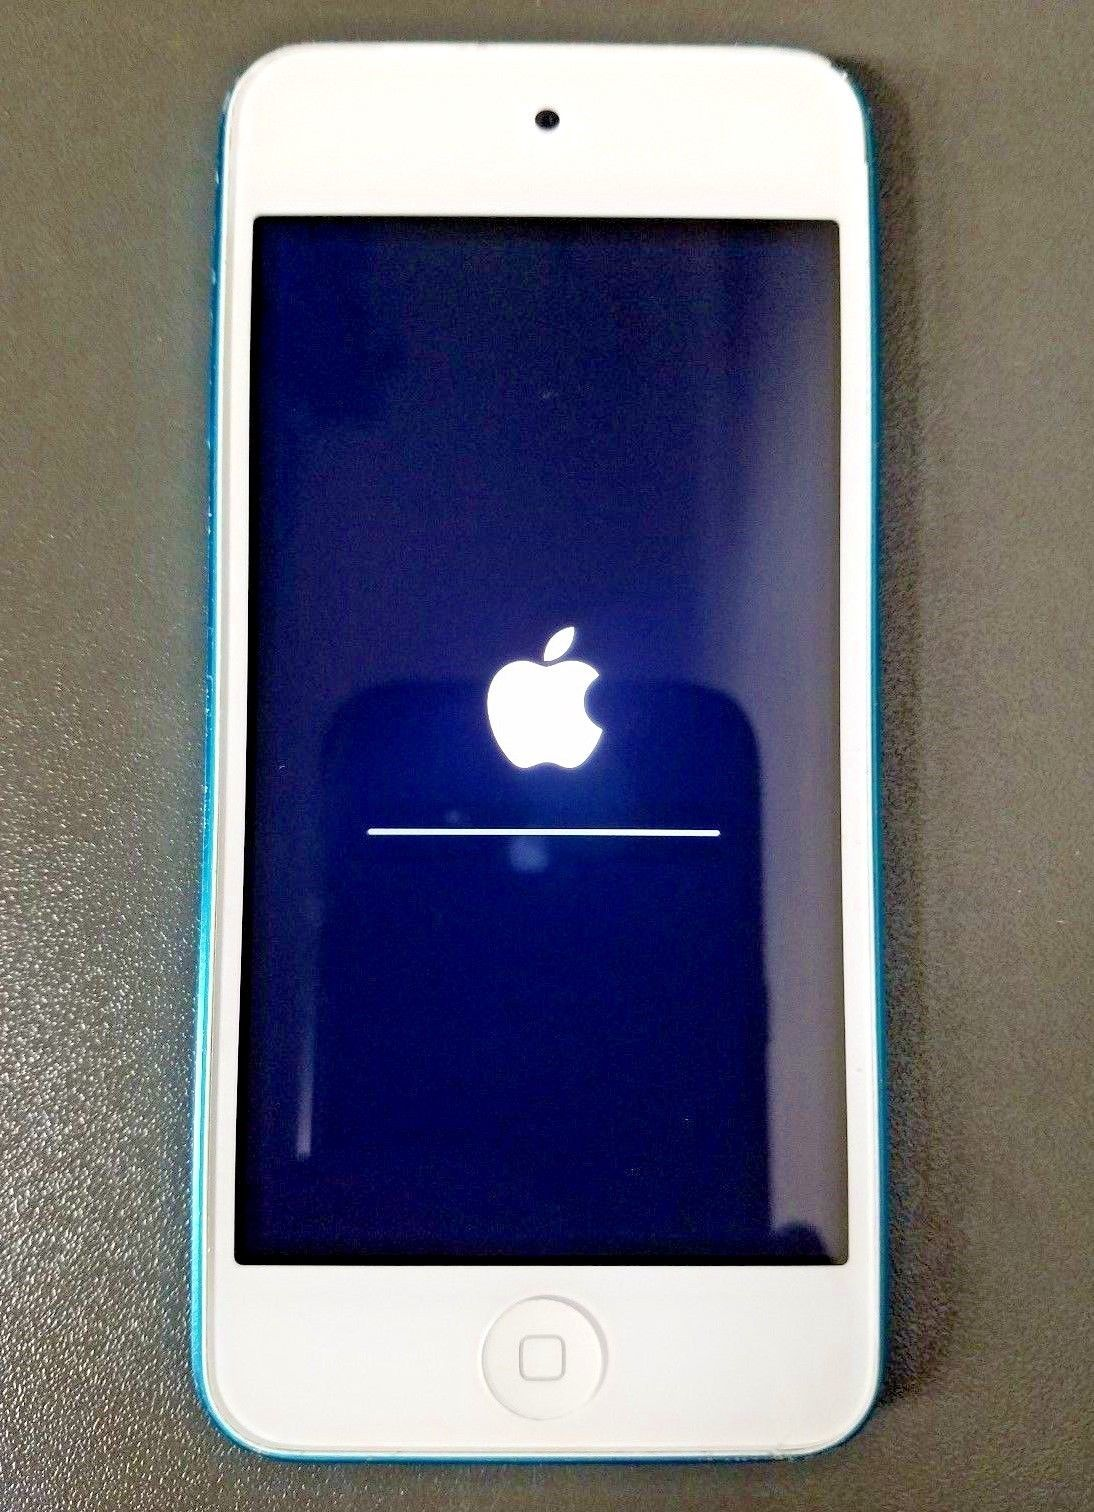 Apple iPod Touch 5th Generation Blue MD717LL/A 32GB https://t.co/PWY3PCLxVV https://t.co/nF4loD519r